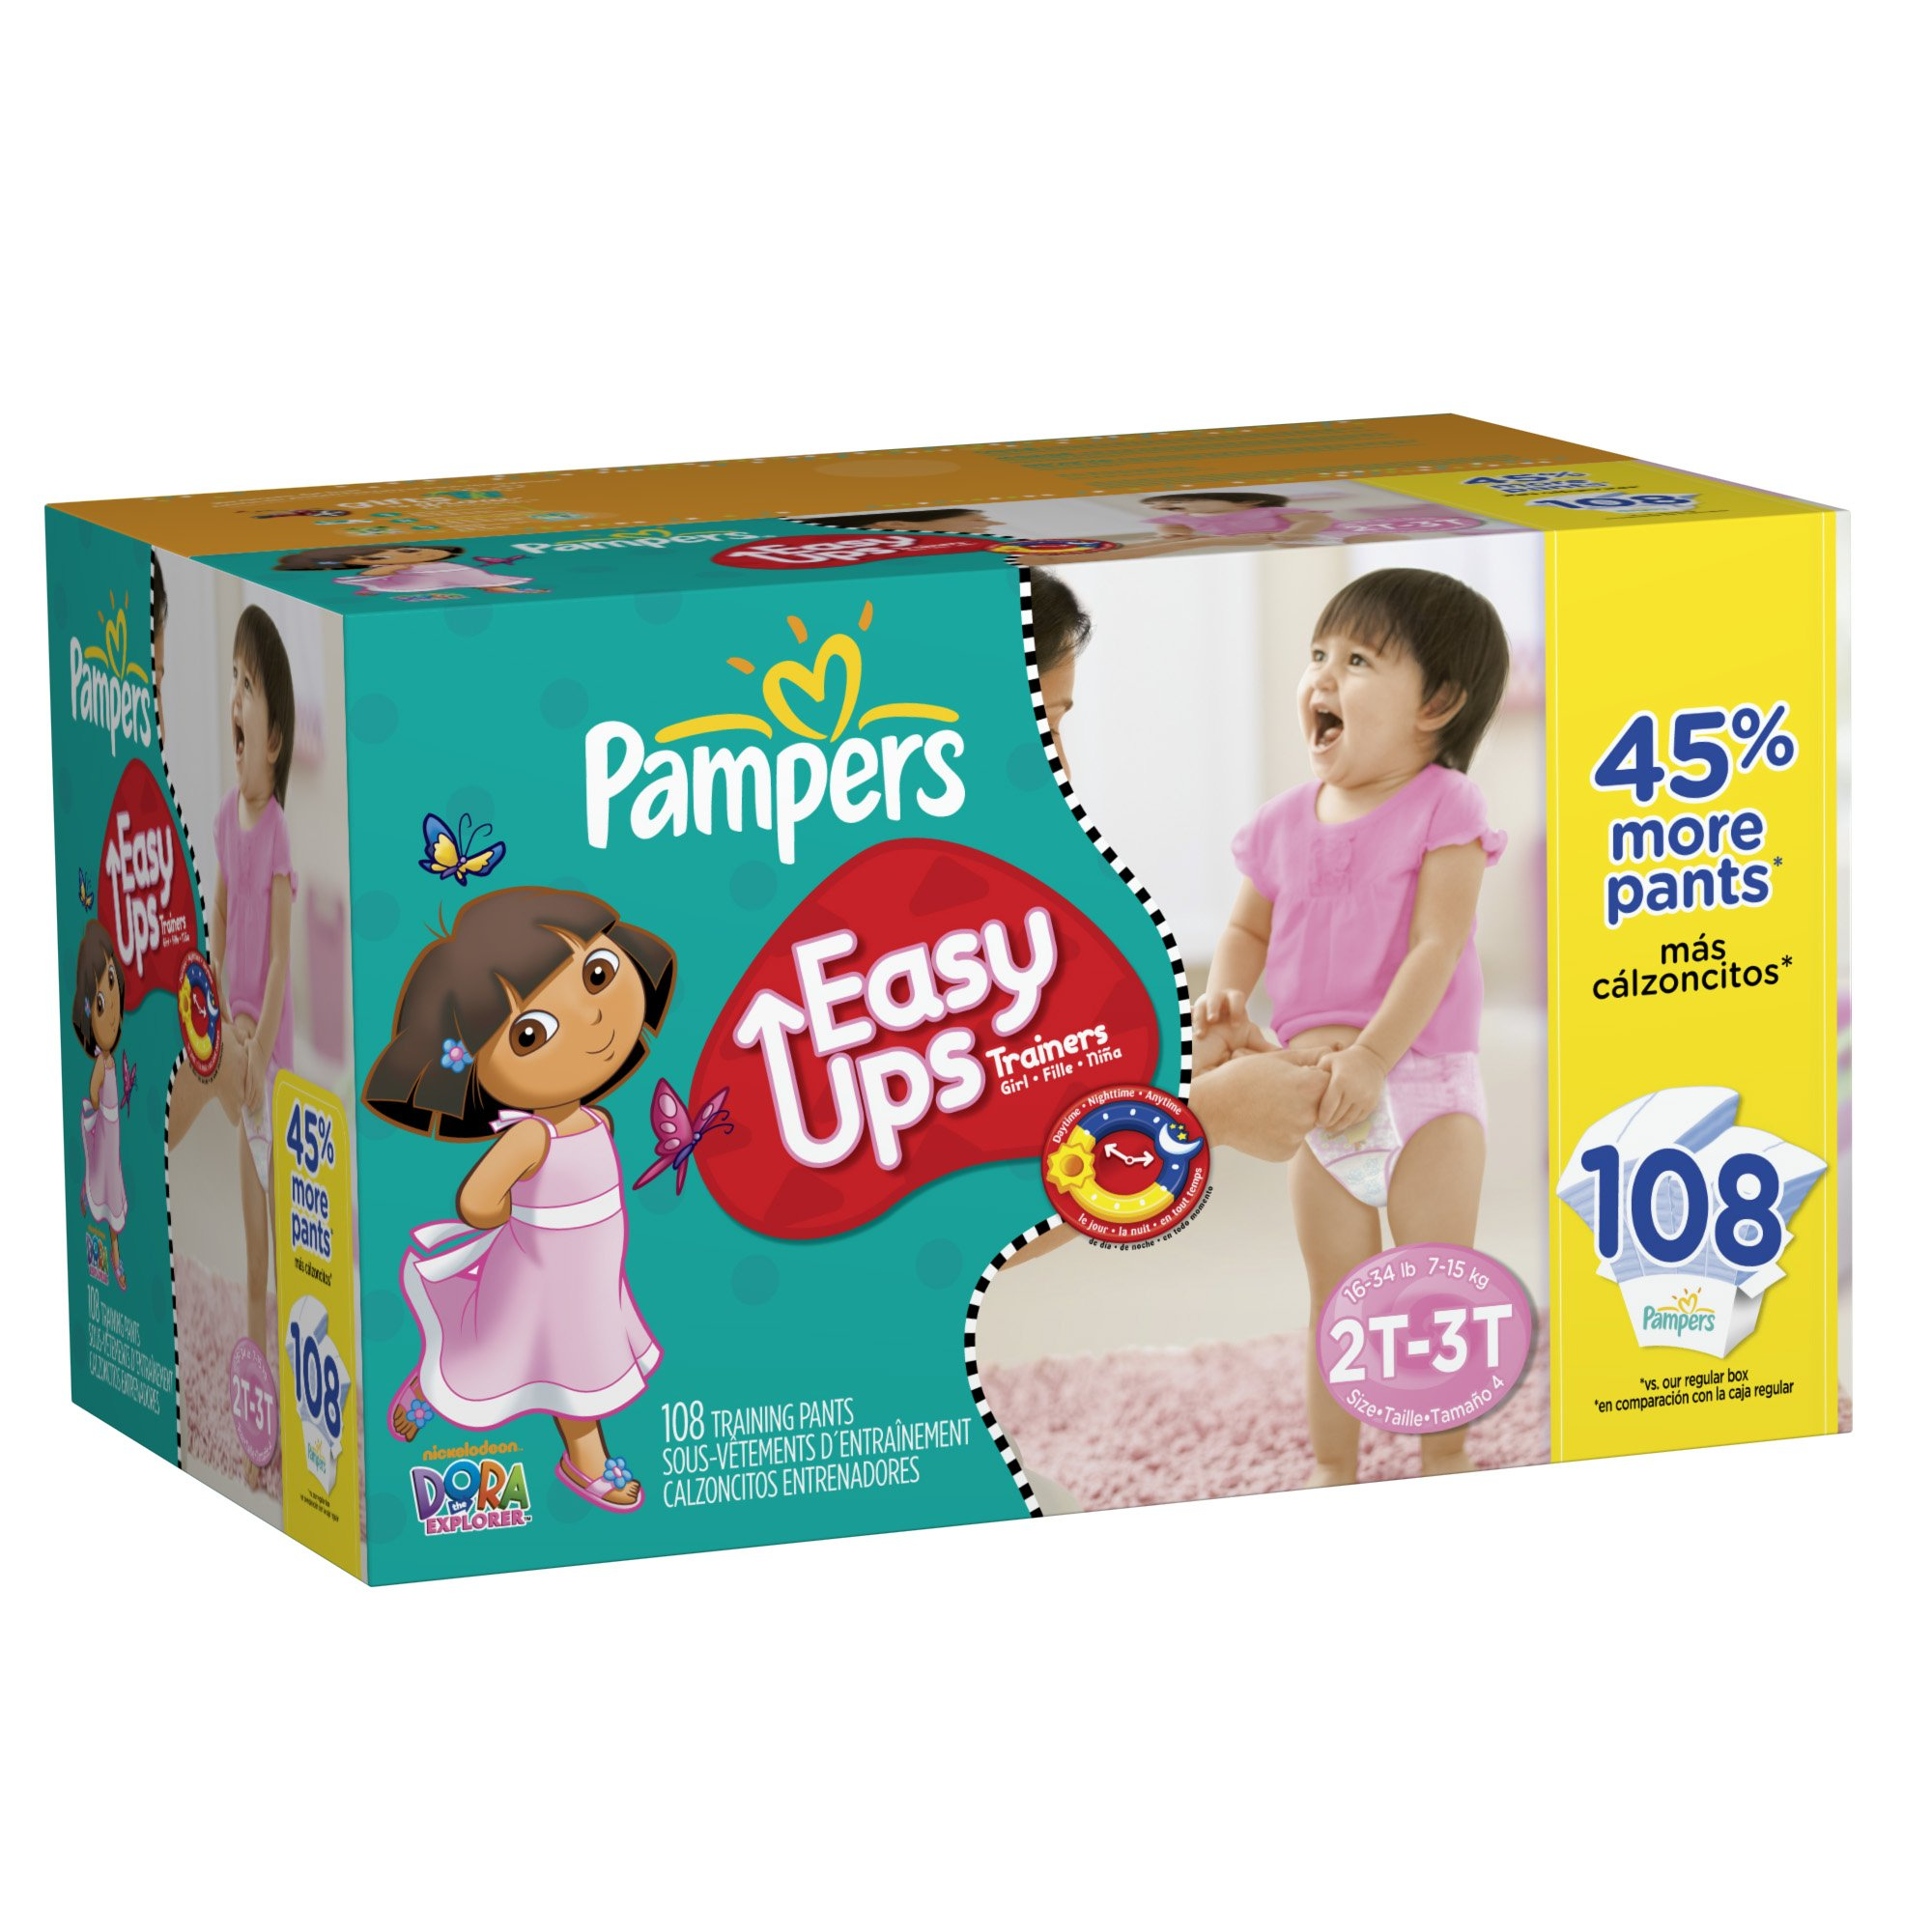 Pampers Easy Ups Trainers for Girls Value Pack, Size 2T/3T, 108 Count